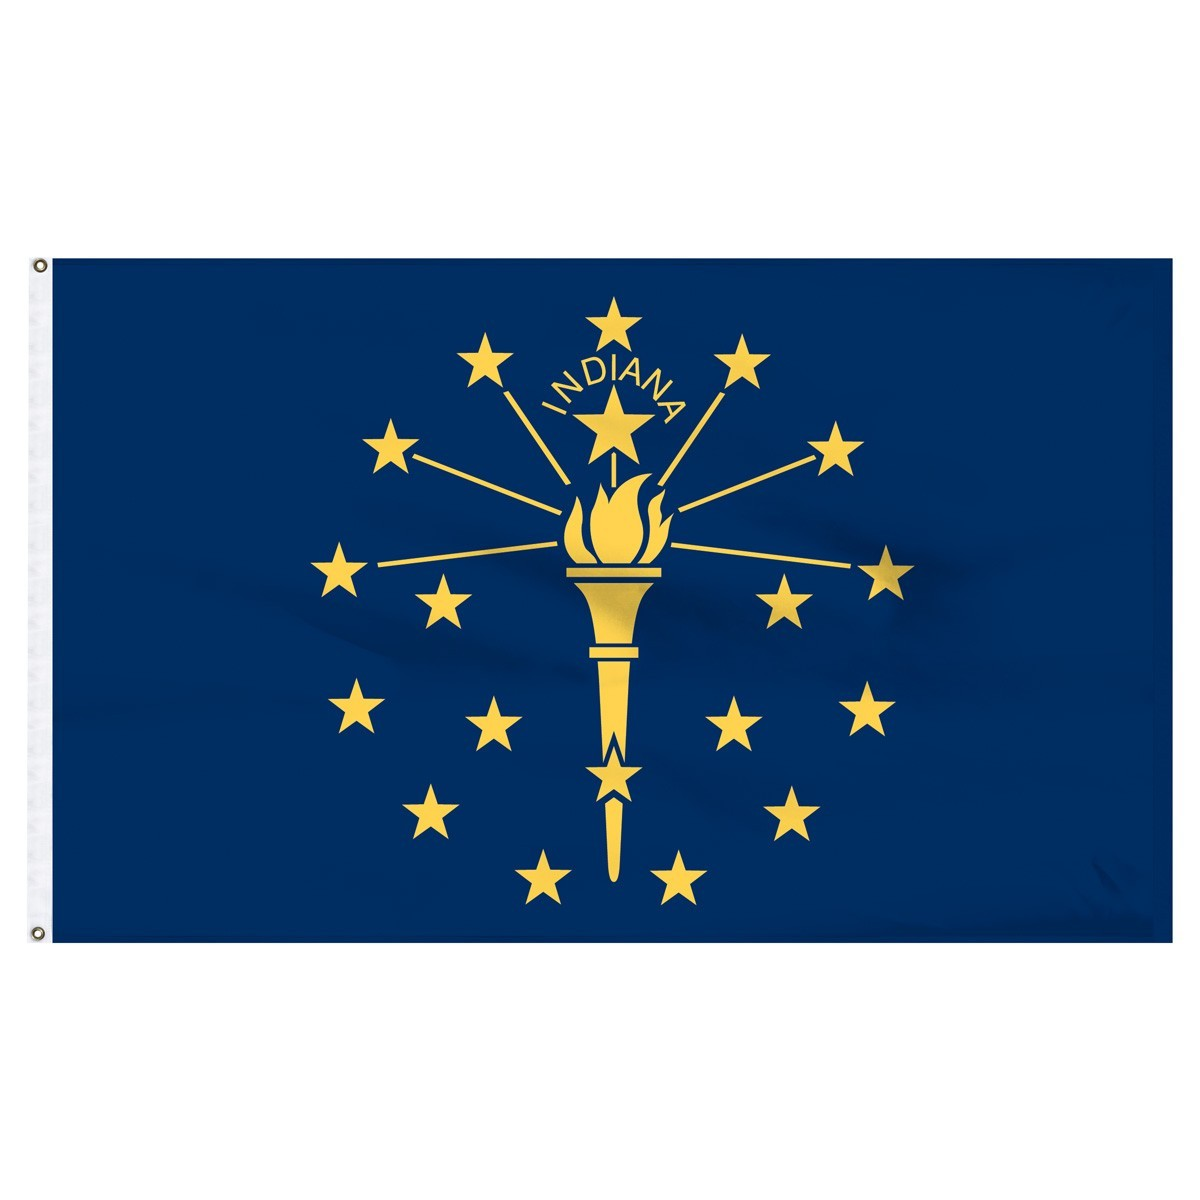 Indiana Flags For Sale by 1-800 Flags